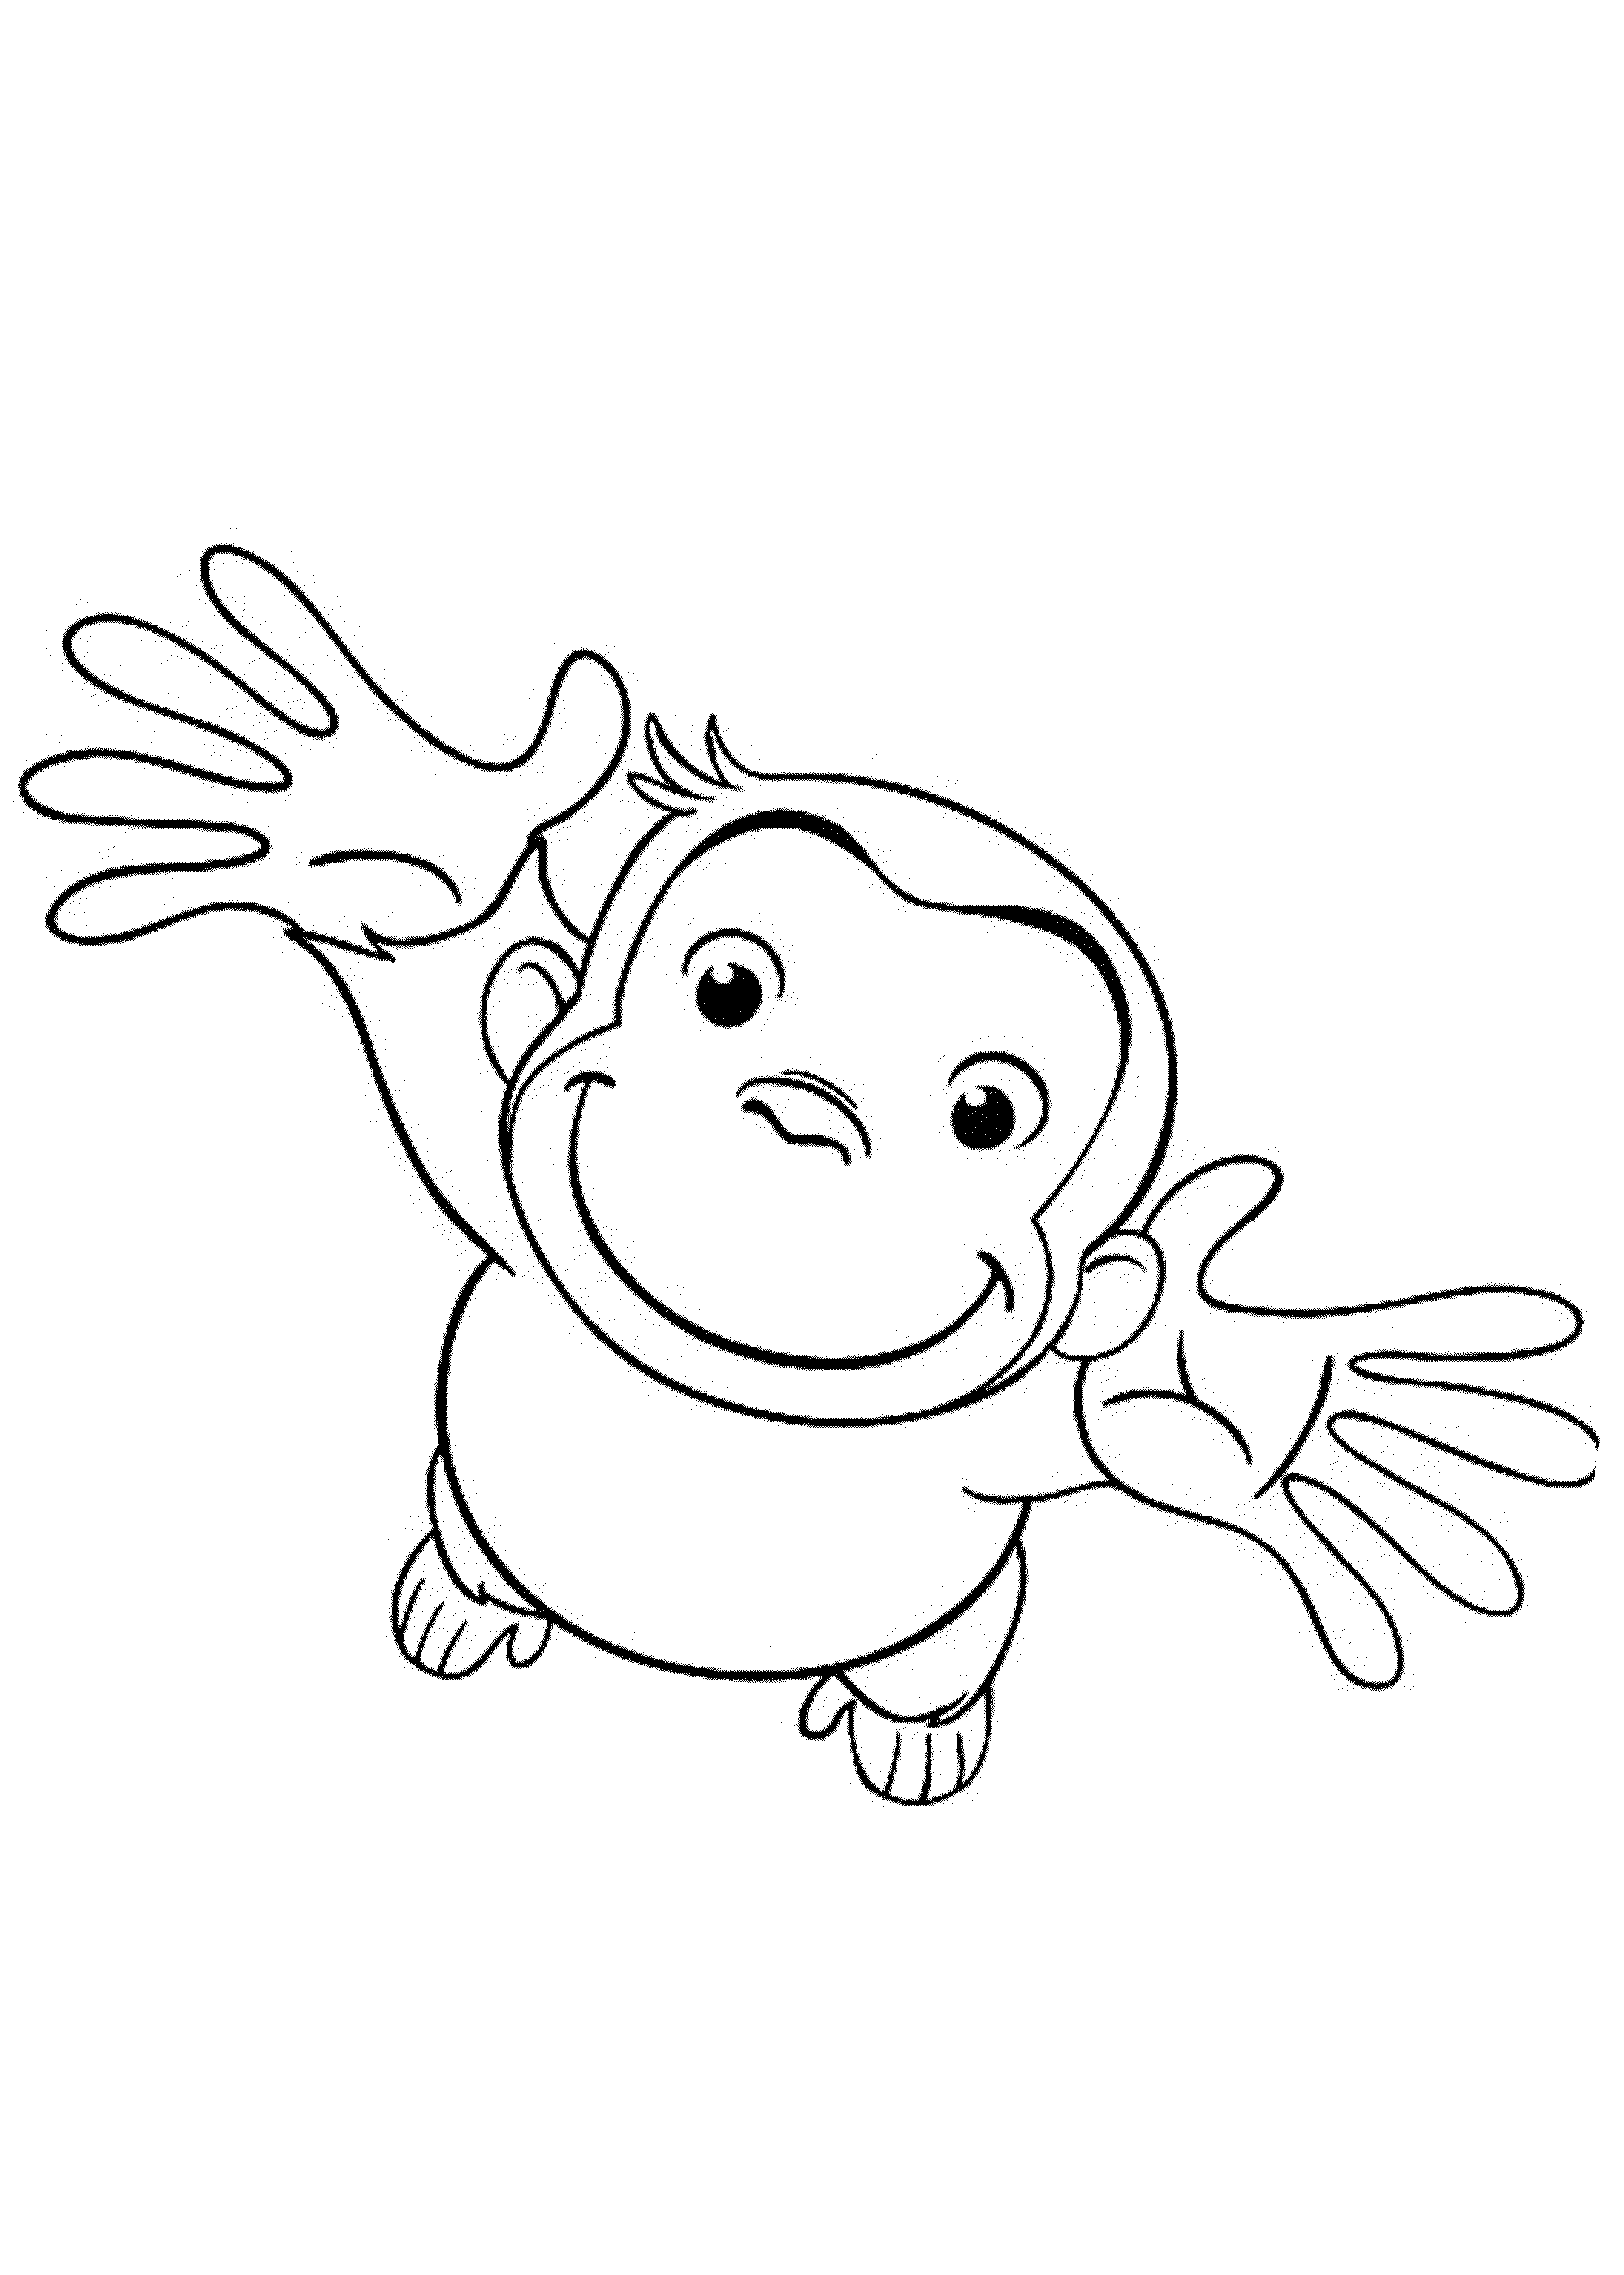 best colouring pages to print super why coloring pages best coloring pages for kids print colouring best pages to